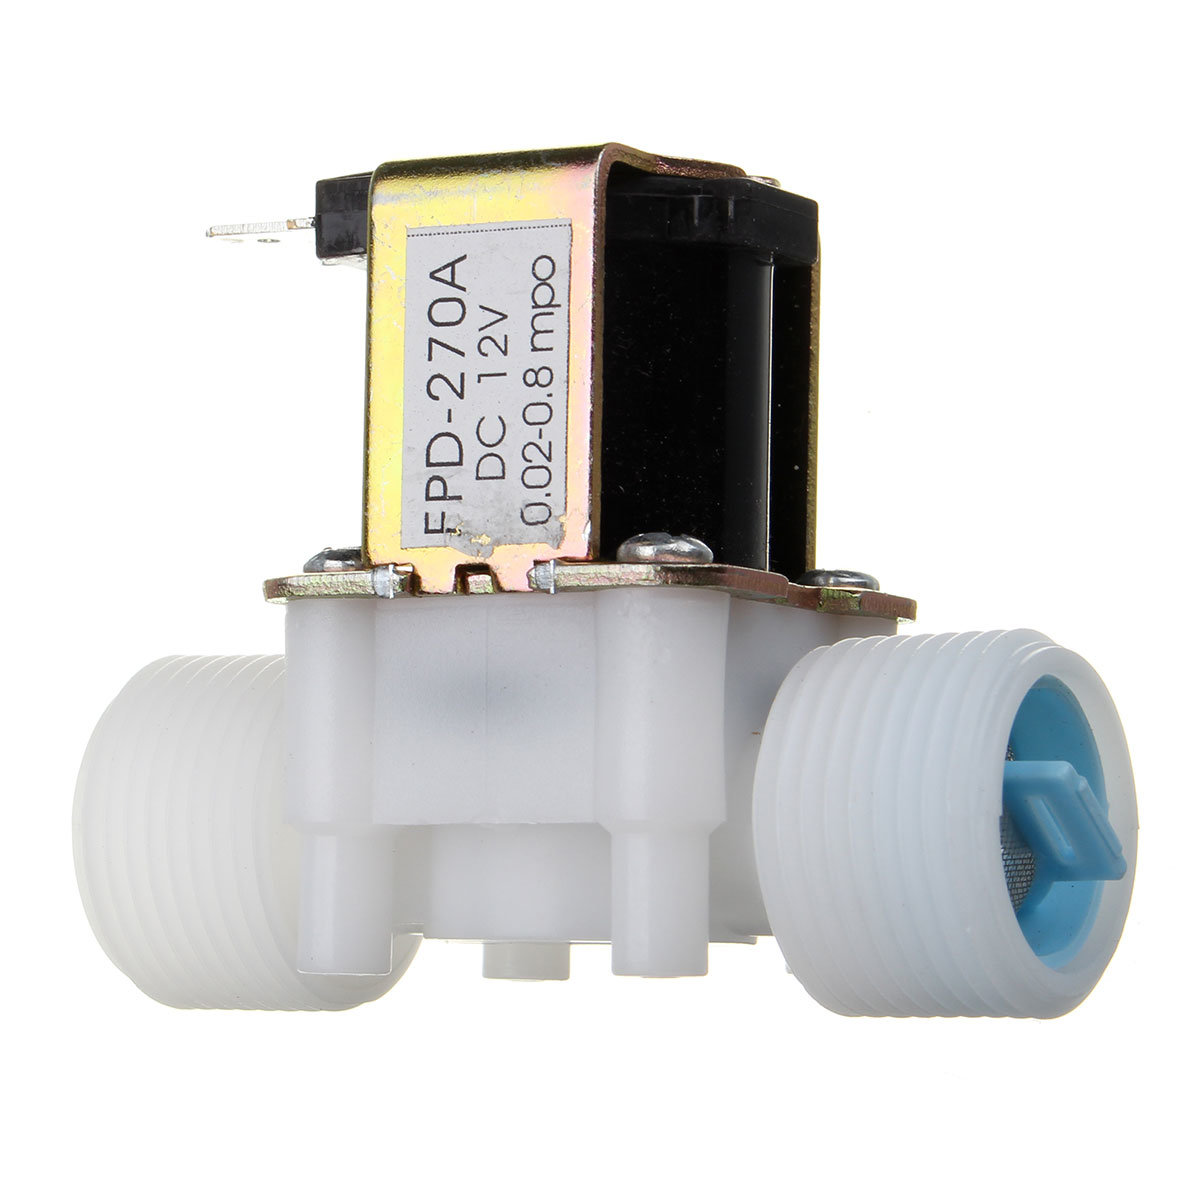 4 Water Diverter Device